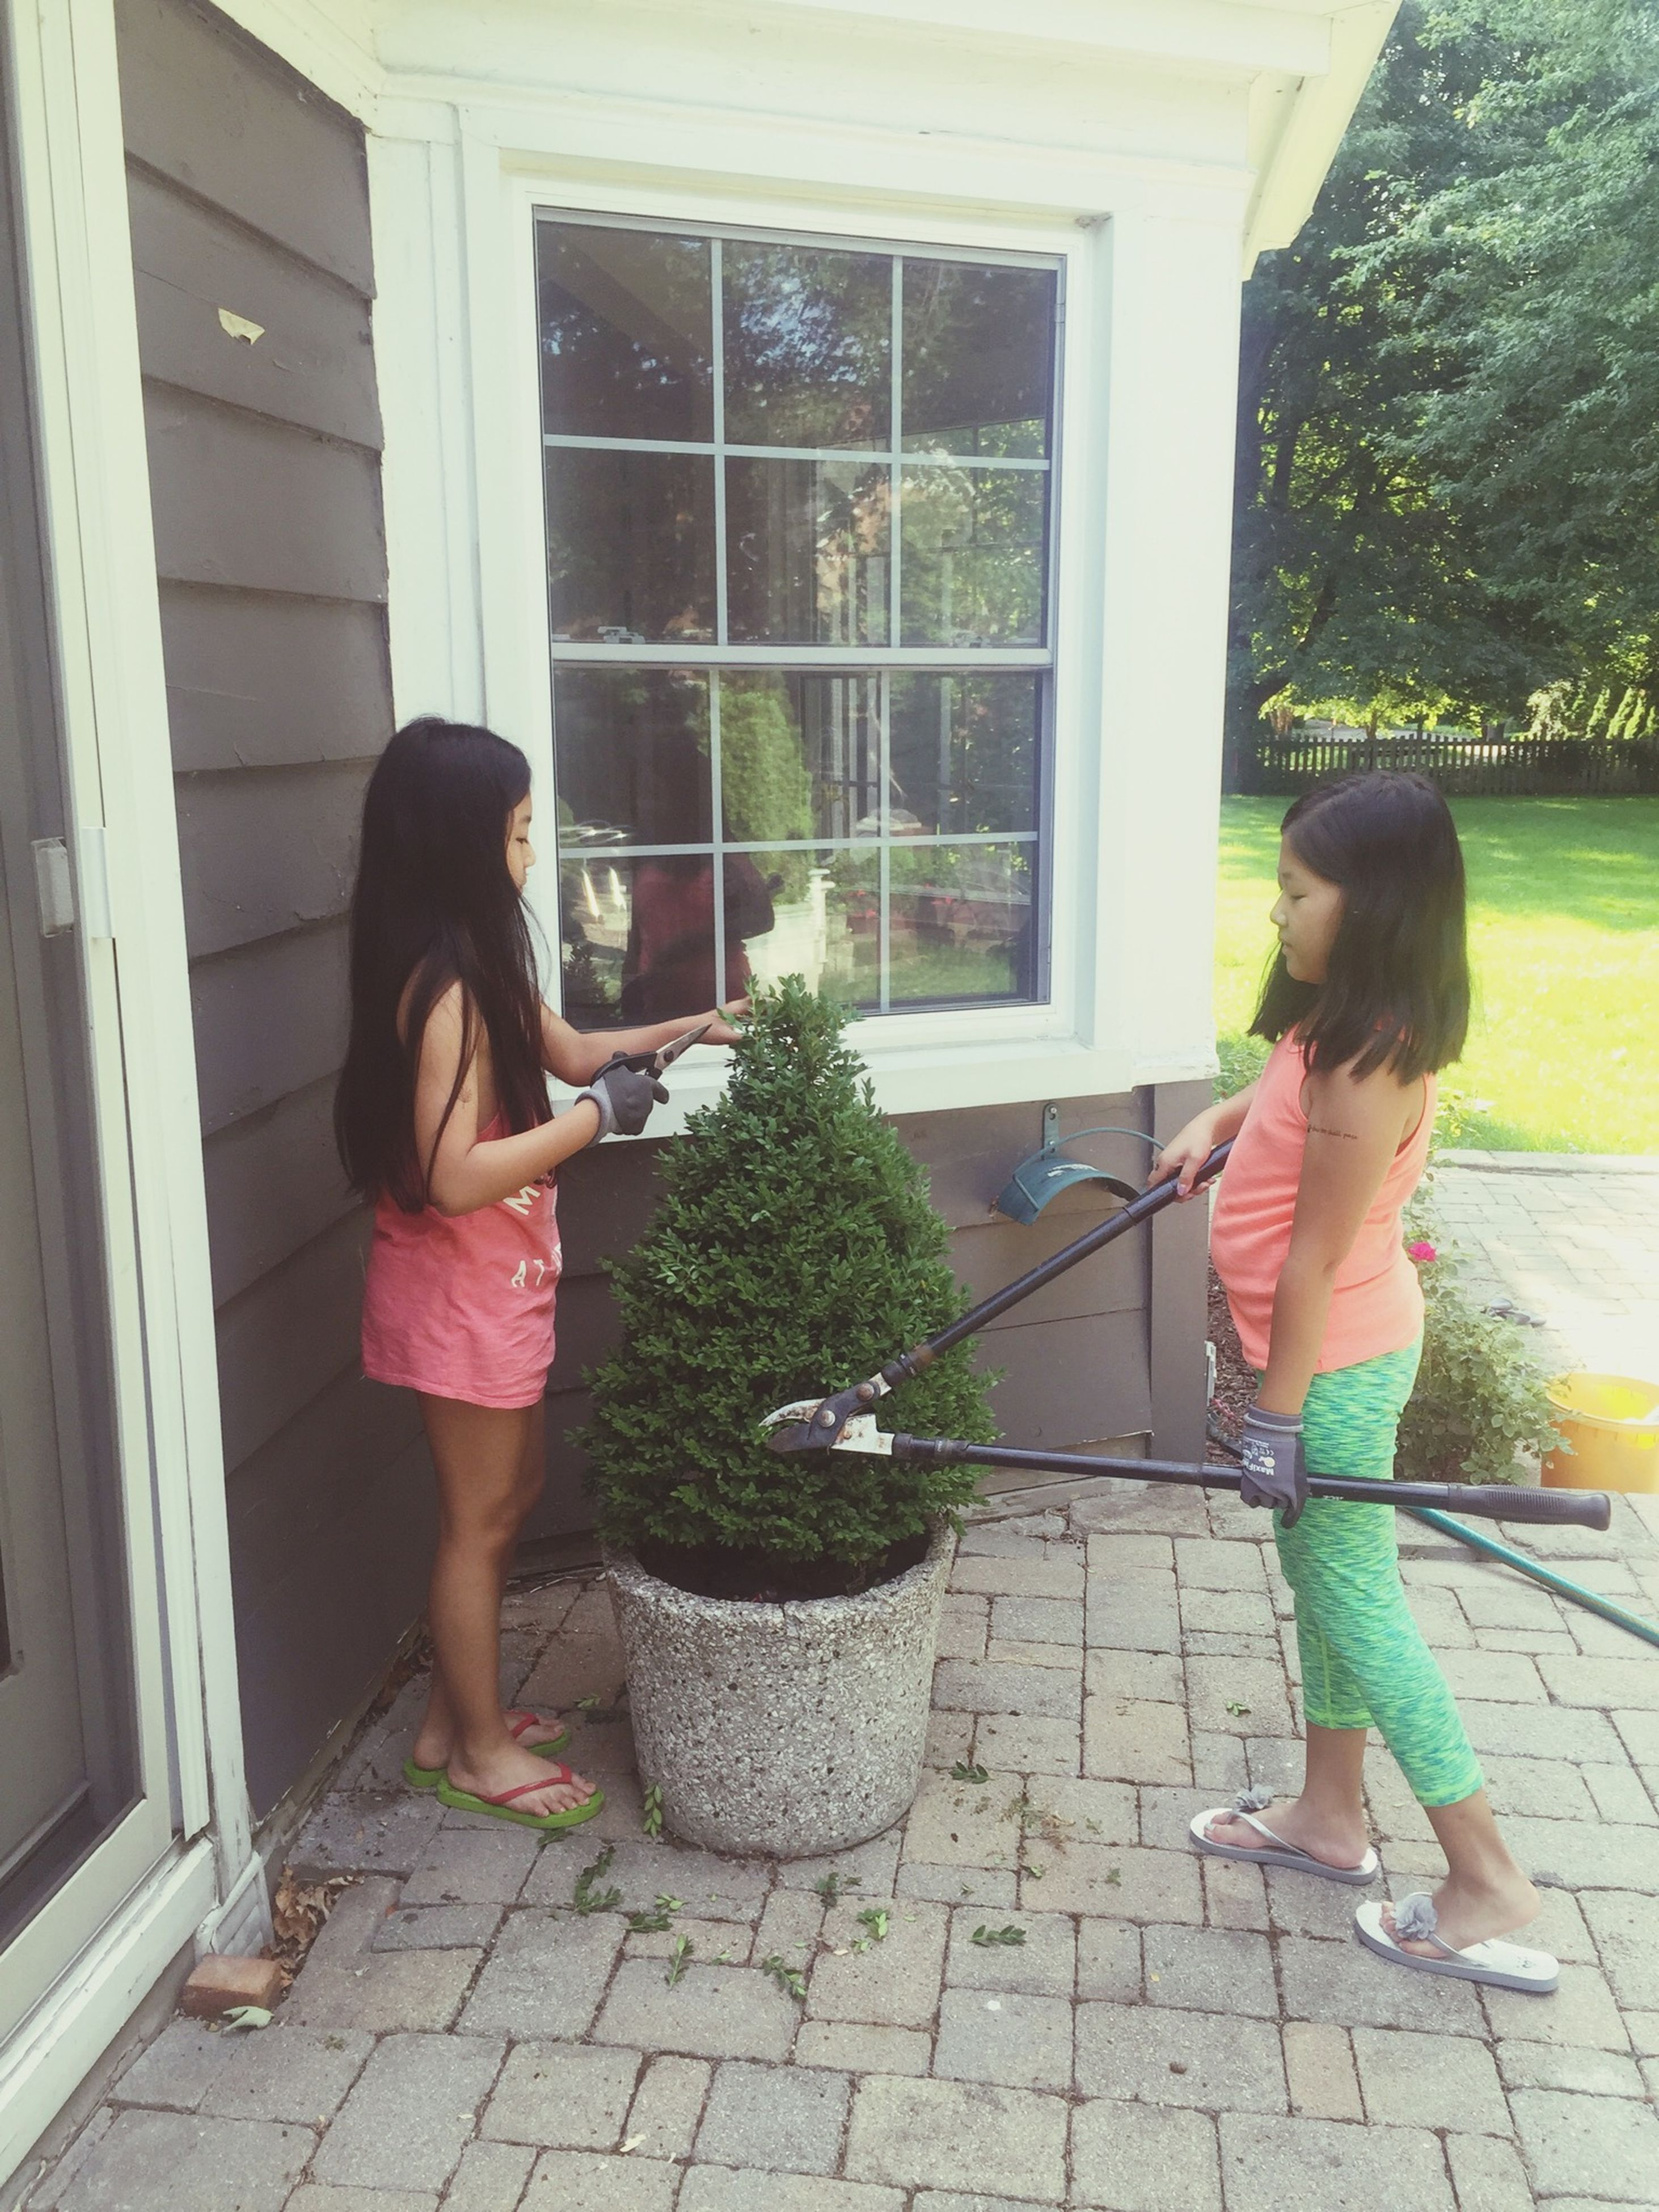 lifestyles, full length, casual clothing, leisure activity, tree, plant, day, outdoors, green color, growth